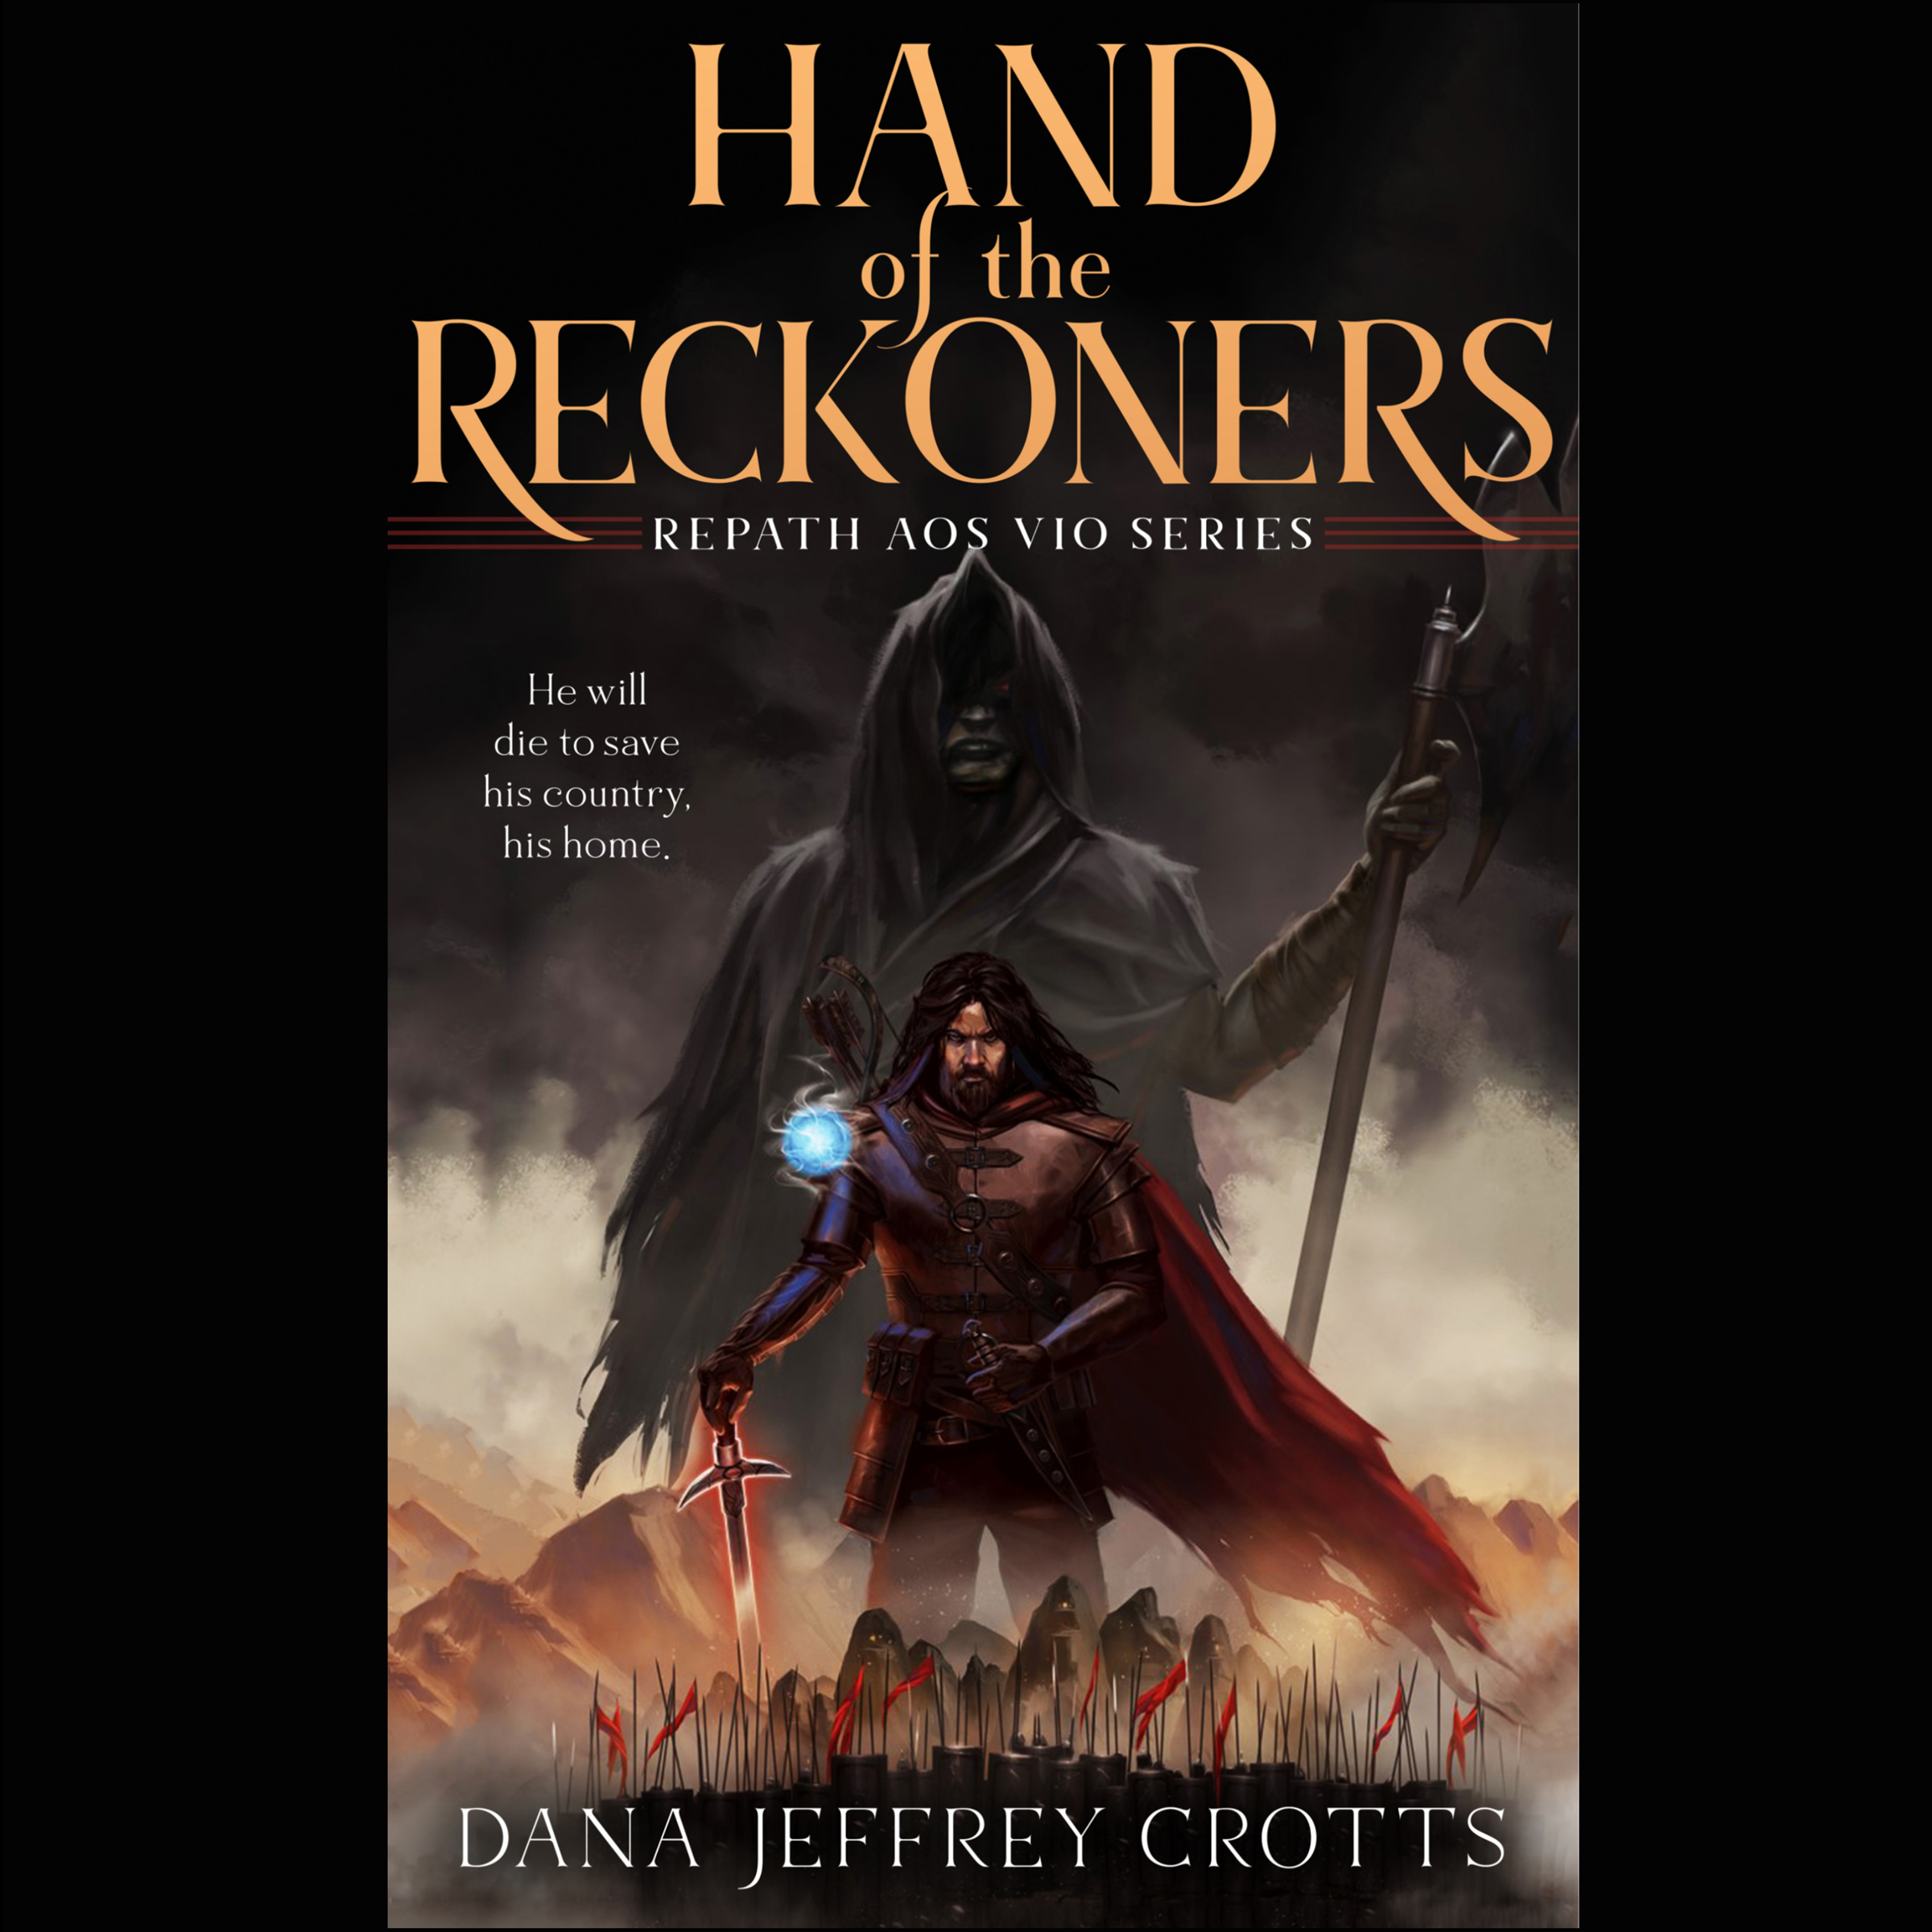 Hand of the Reckoners cover image